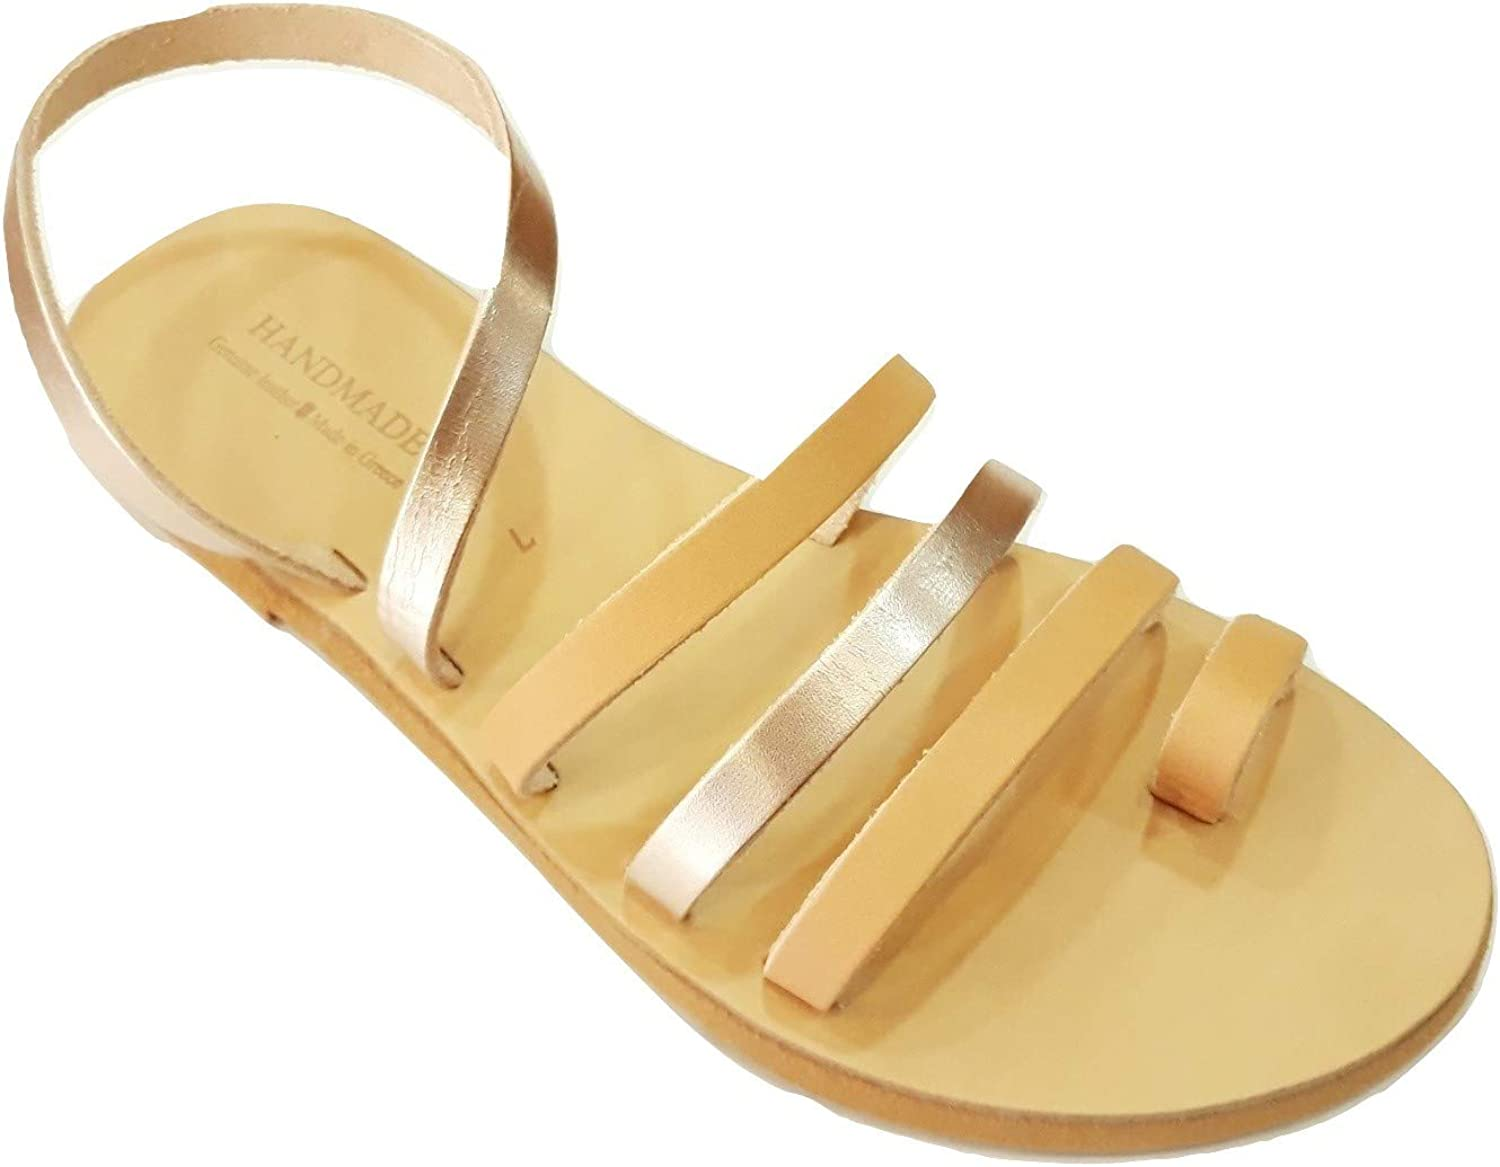 Greek Leather Seals Theia donna Hefatto Ancient Style Slide Flat Summer Spartan Rouomo Genuine Hecrafted Toe Ring Boho moda sautope